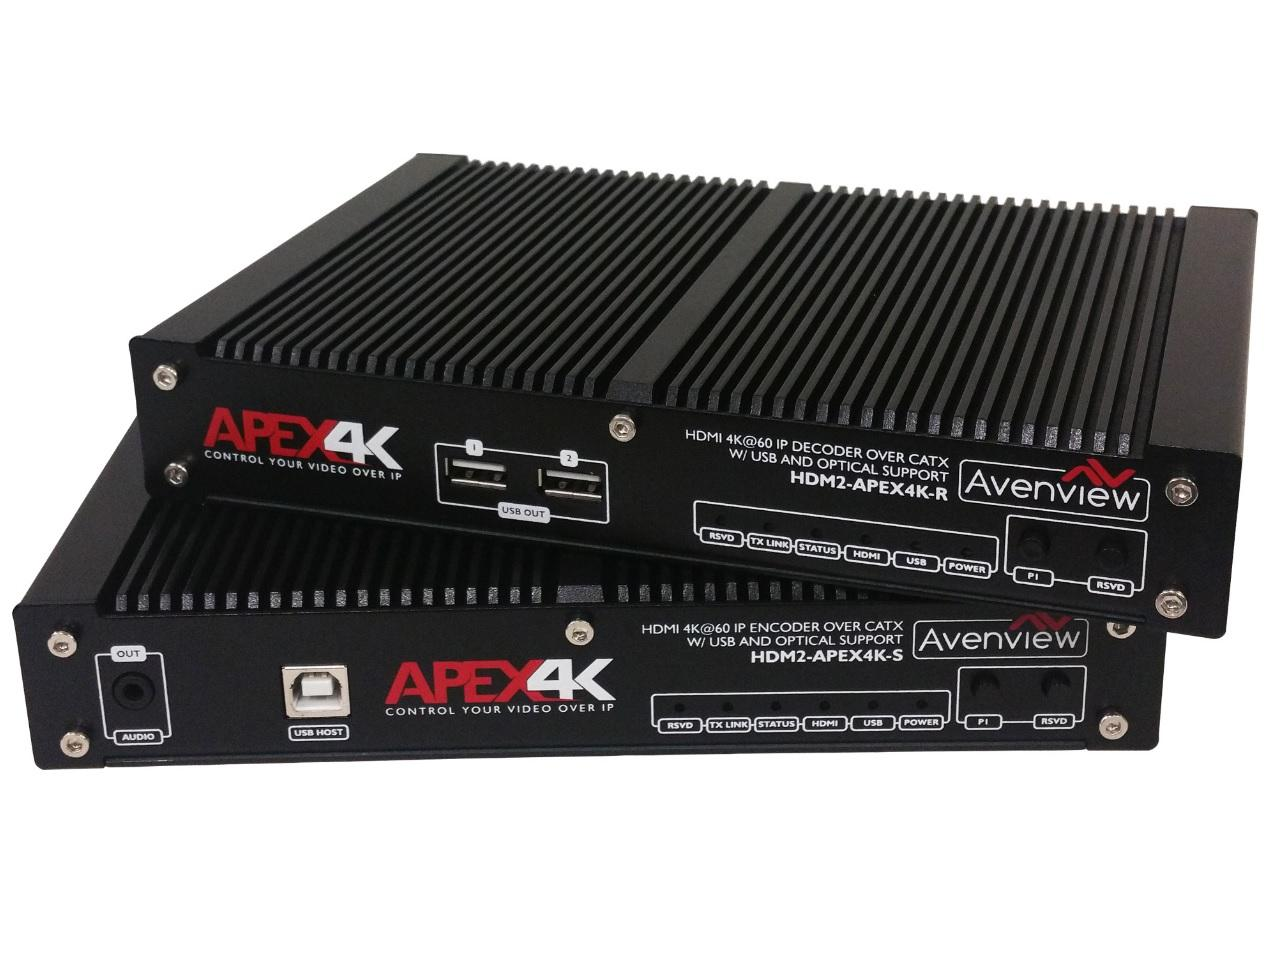 HDM2-APEX4K HDMI IP Extender(Transmitter/Receiver)Set Over CATX 10-Gigabit with 4k Video Wall/Matrix Functions by Avenview